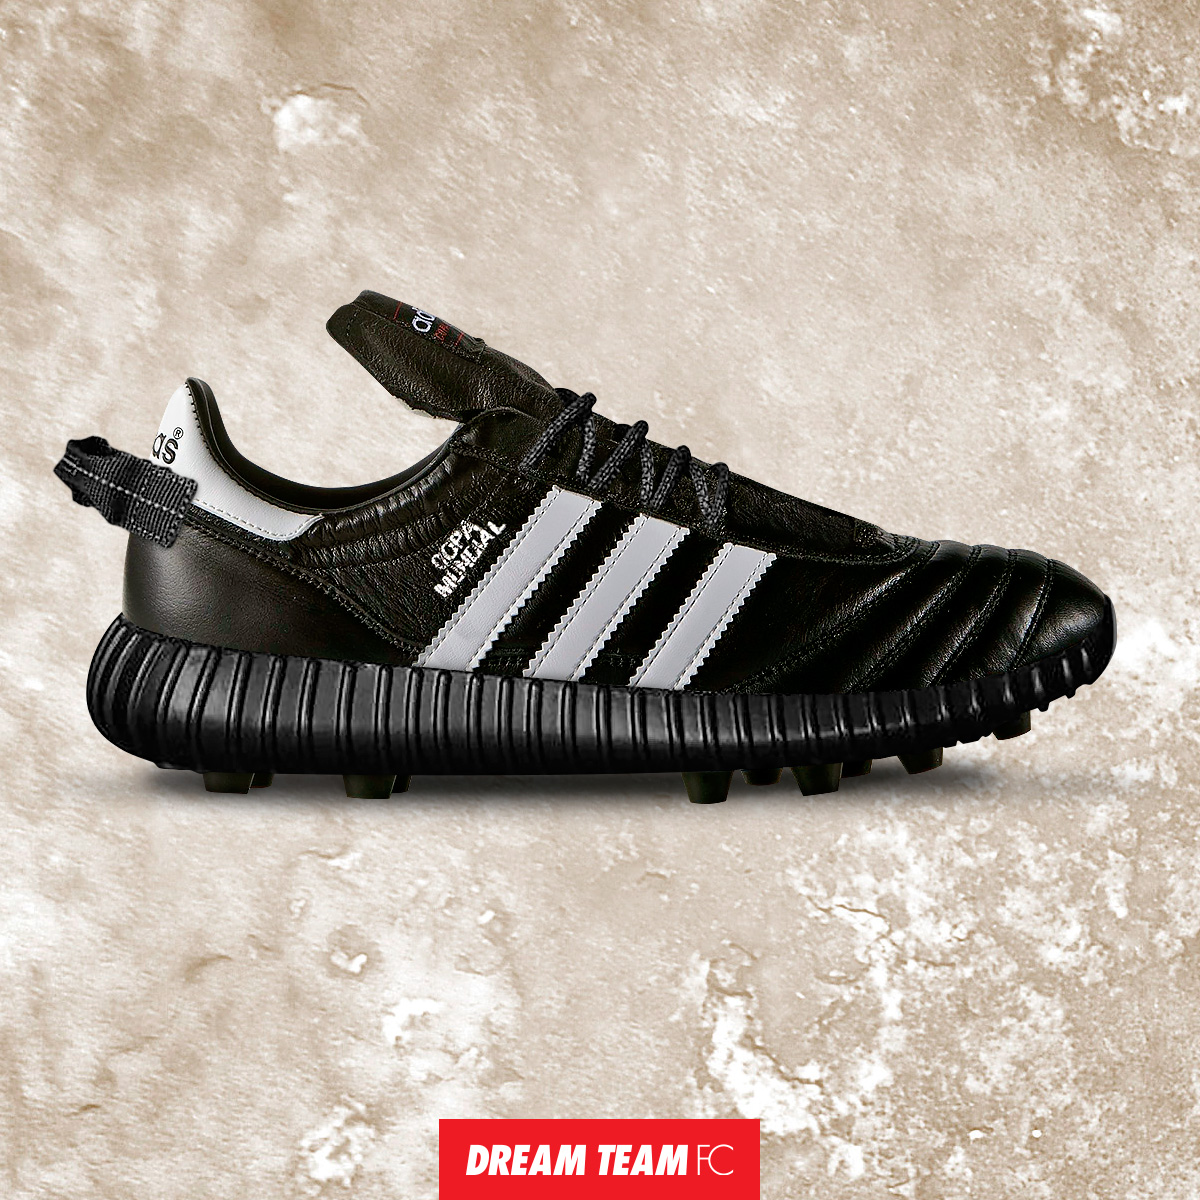 90c1de65a7cd73 Adidas have designed Yeezy football boots – THIS IS NOT A JOKE ...